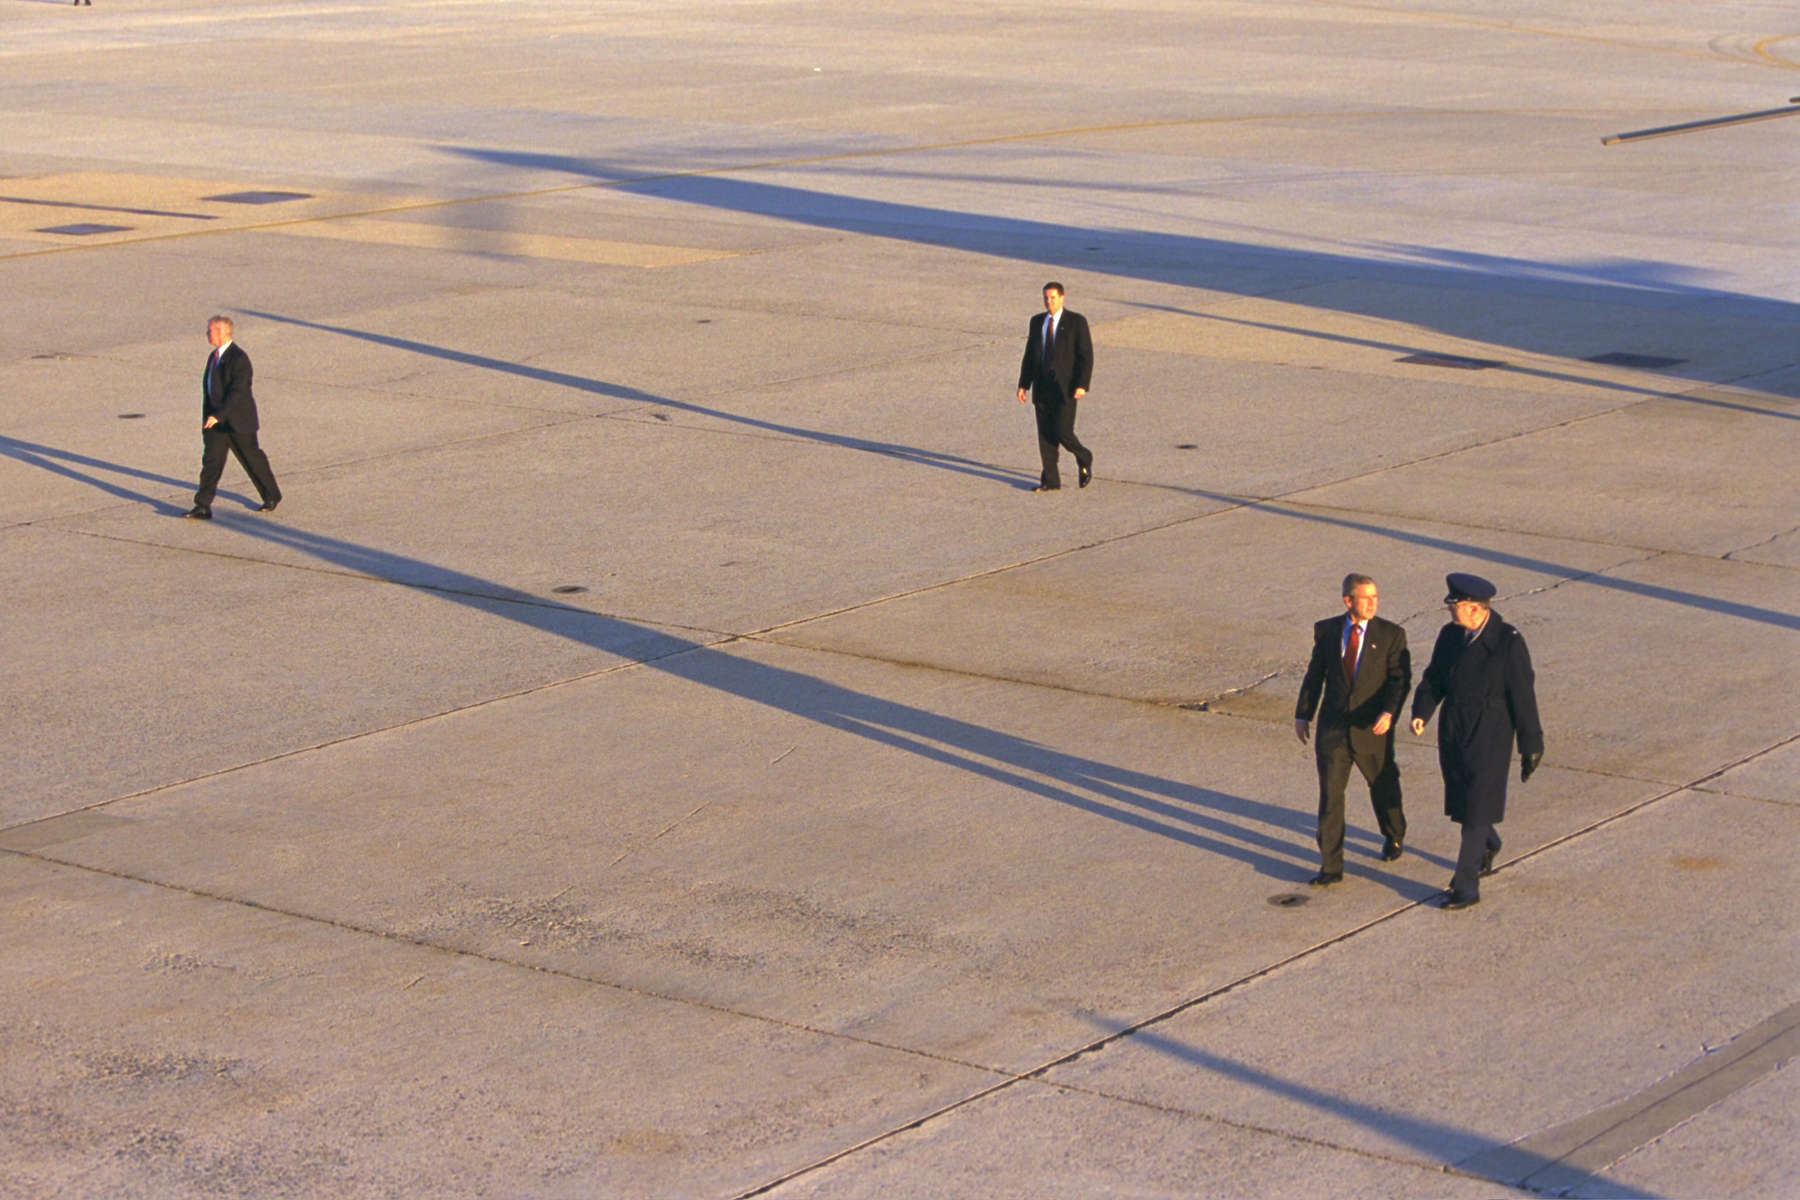 0800, President Bush is escorted from Marine One to Air Force One at Andrews Air Force Base. He departs for Springfield Missouri.